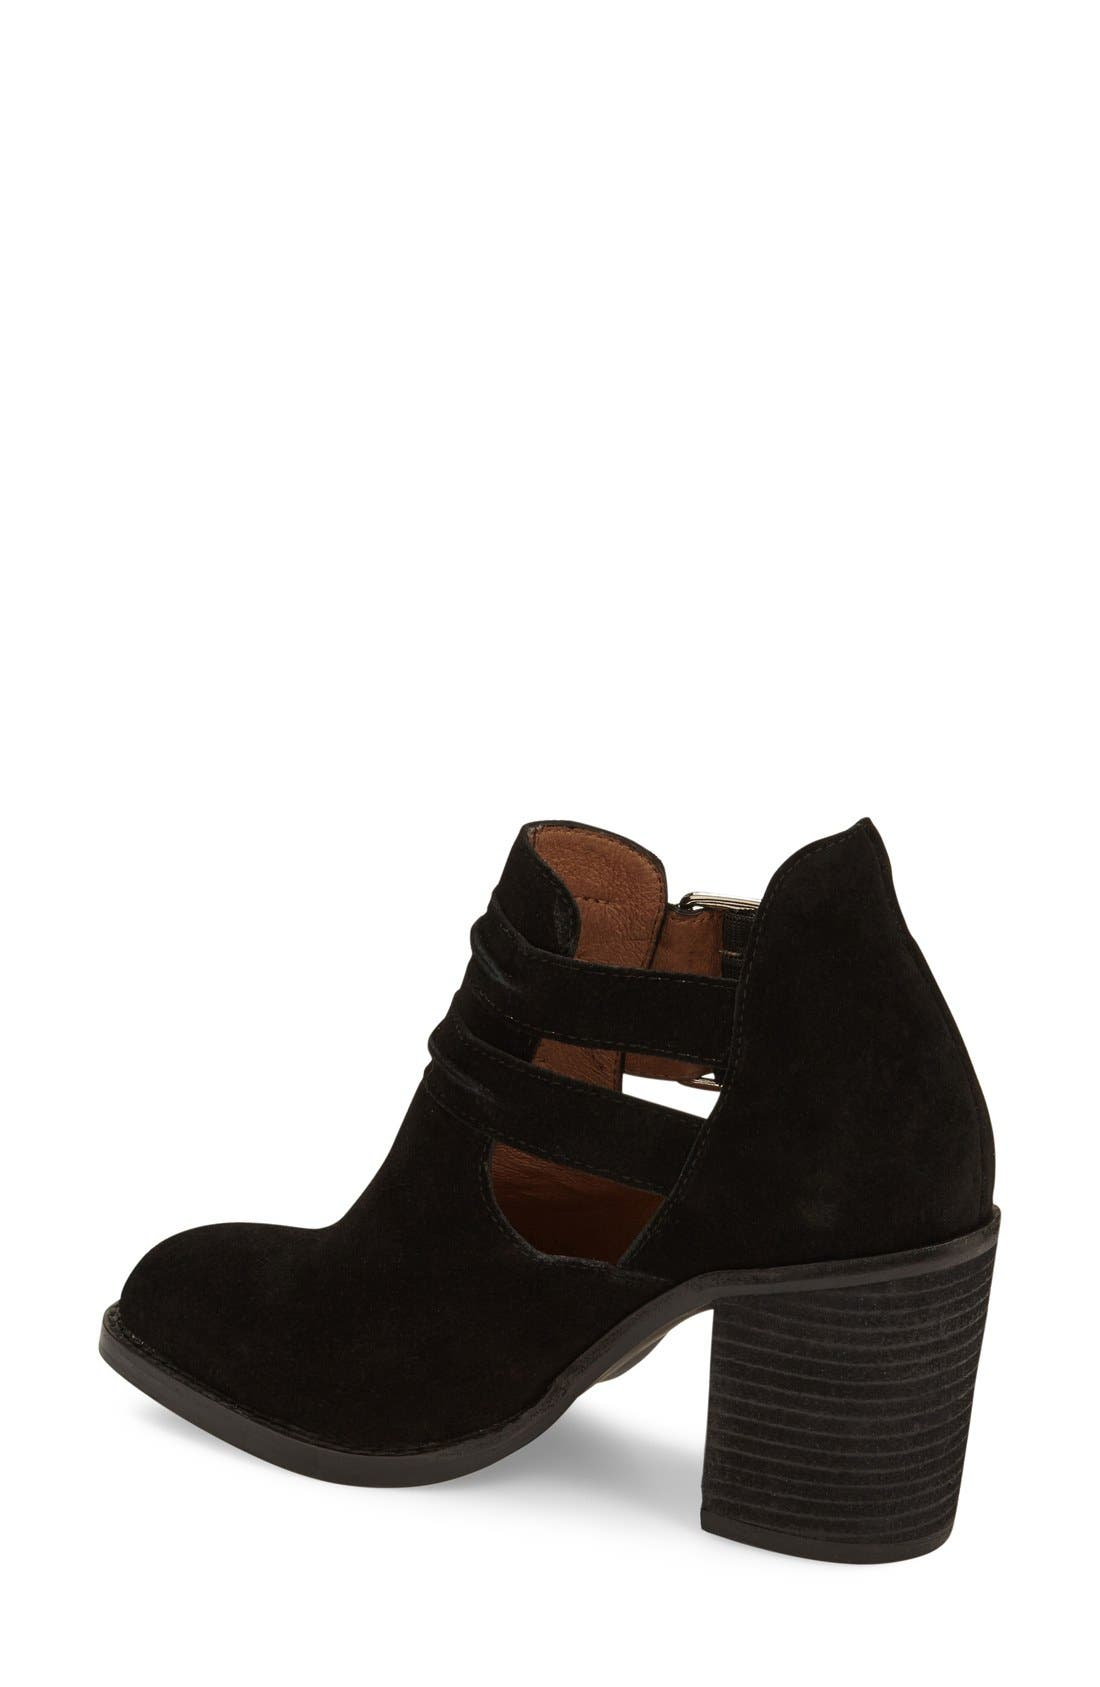 Alternate Image 2  - Jeffrey Campbell 'Roycroft' Bootie (Women)